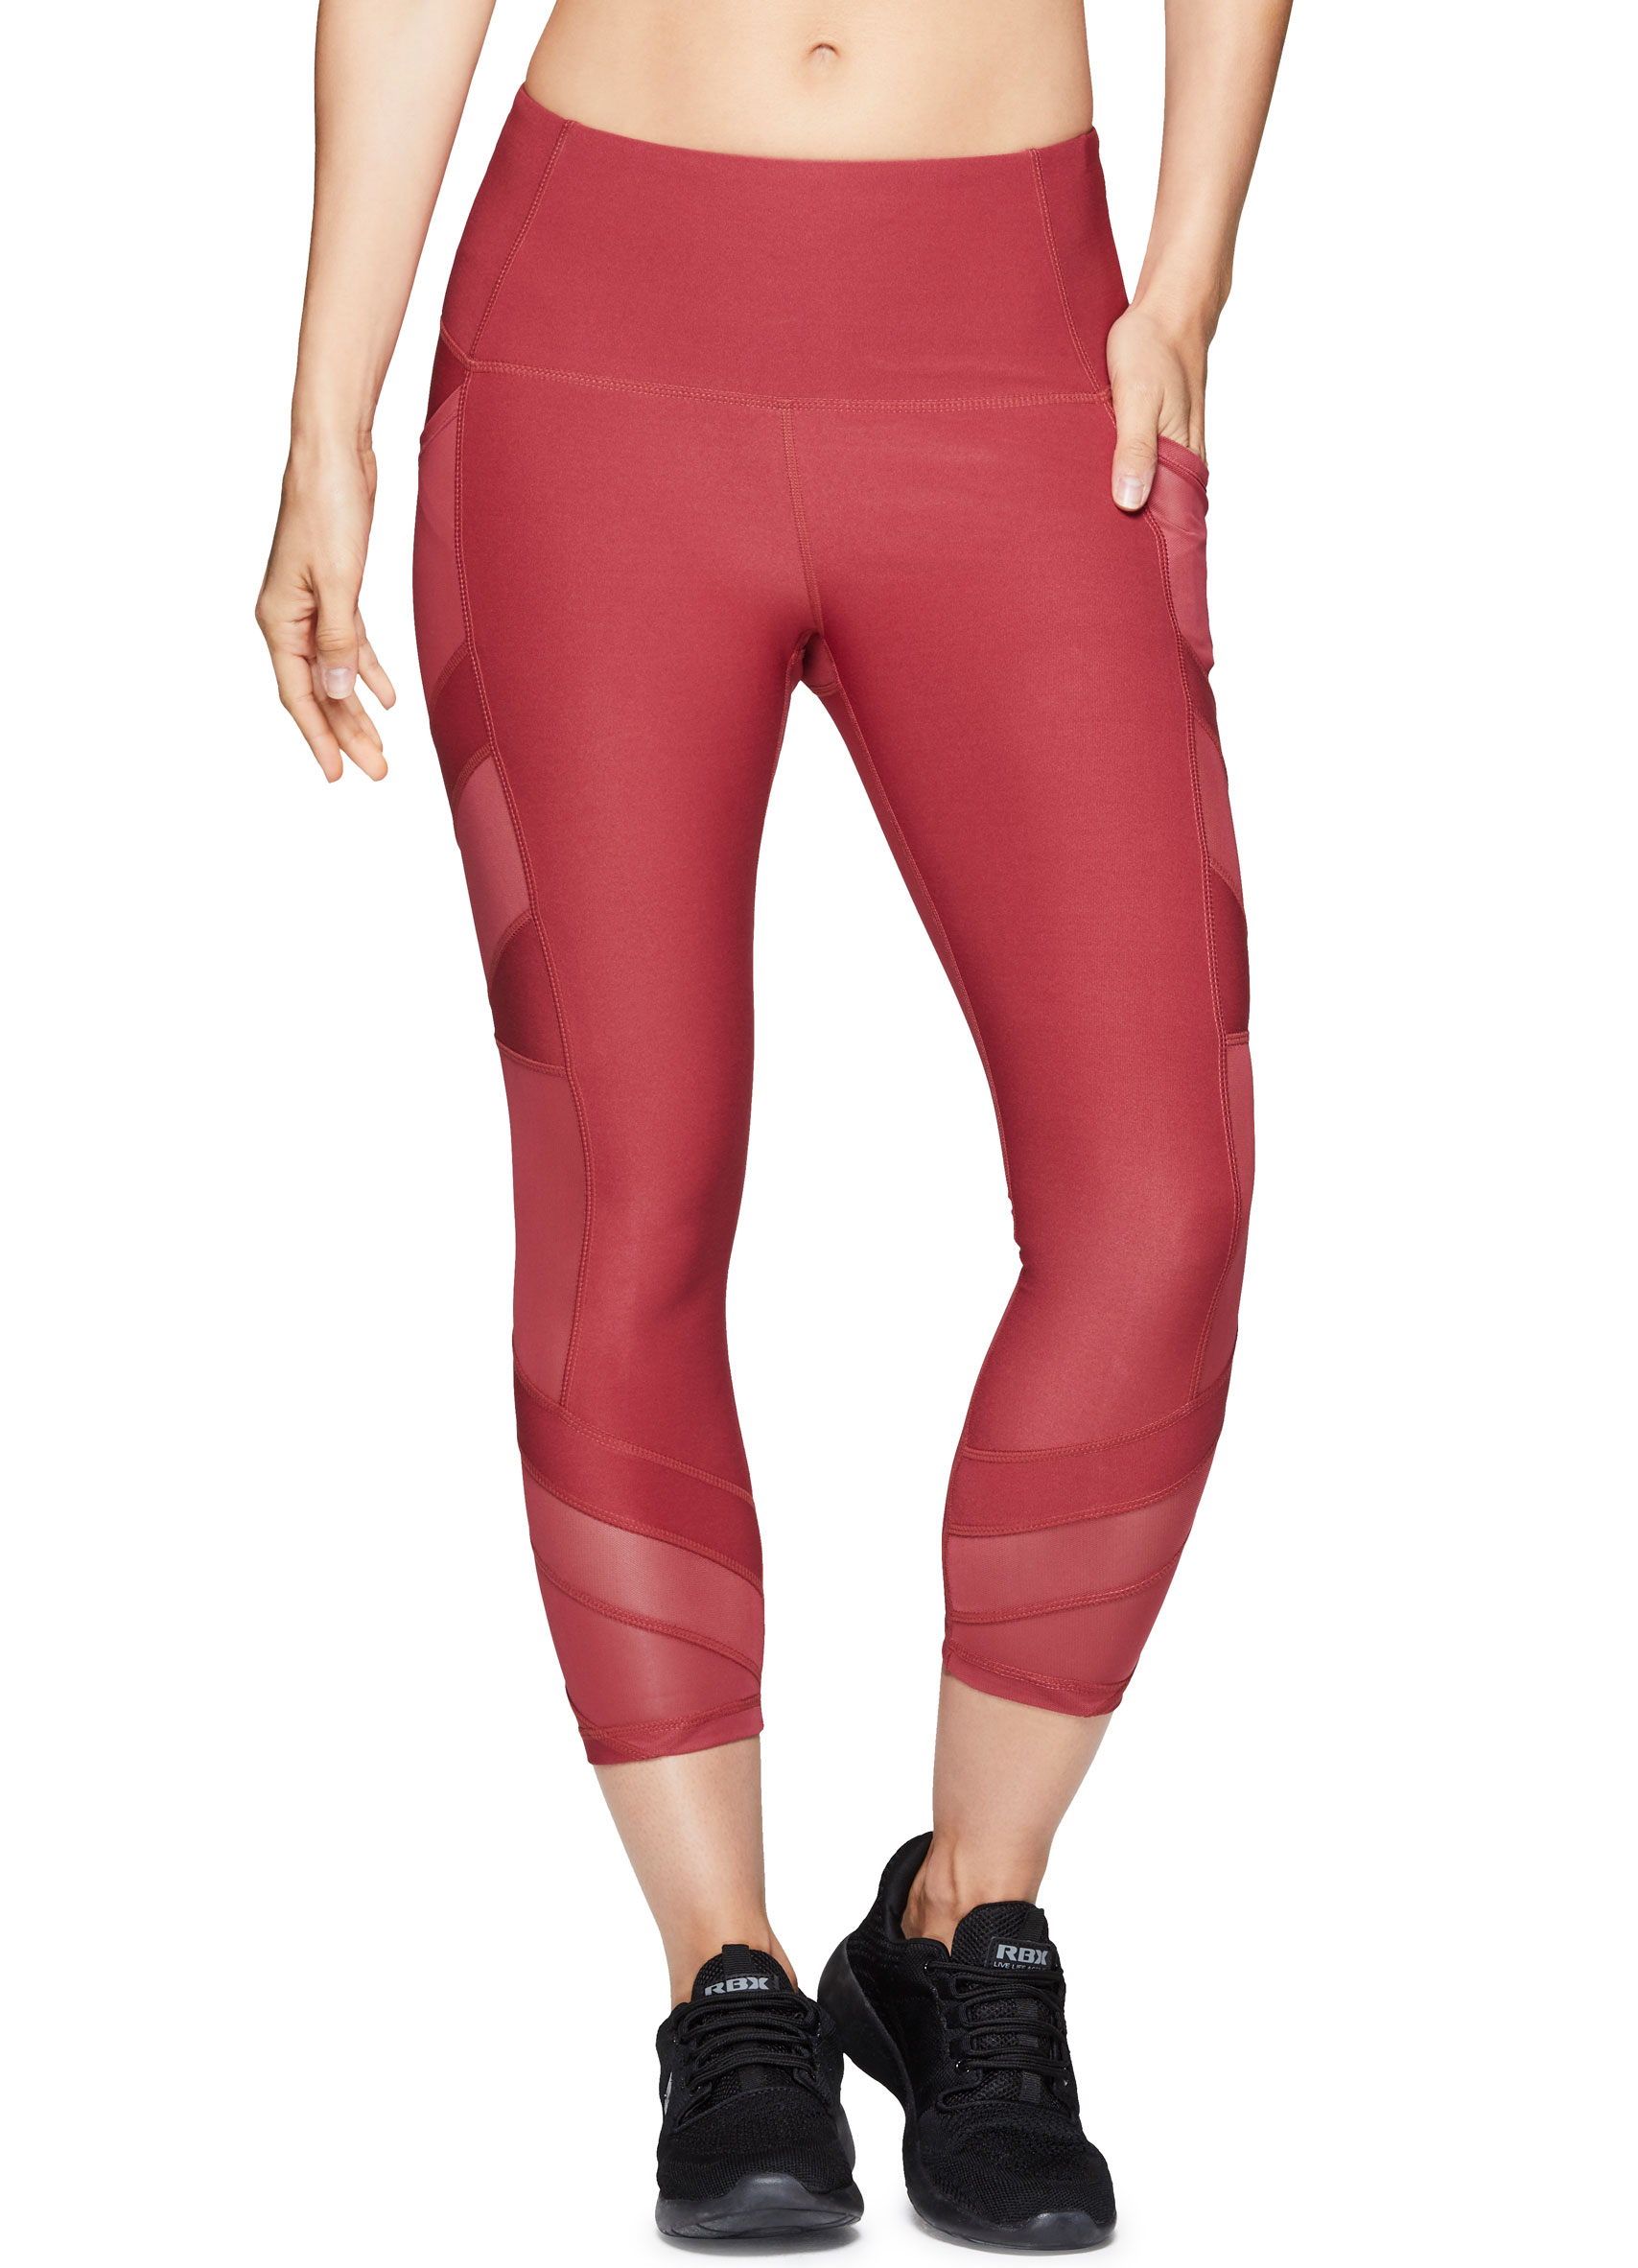 85be7c2be03835 RBX Active Women's Workout Gym Yoga Athletic Leggings Red Multi ...